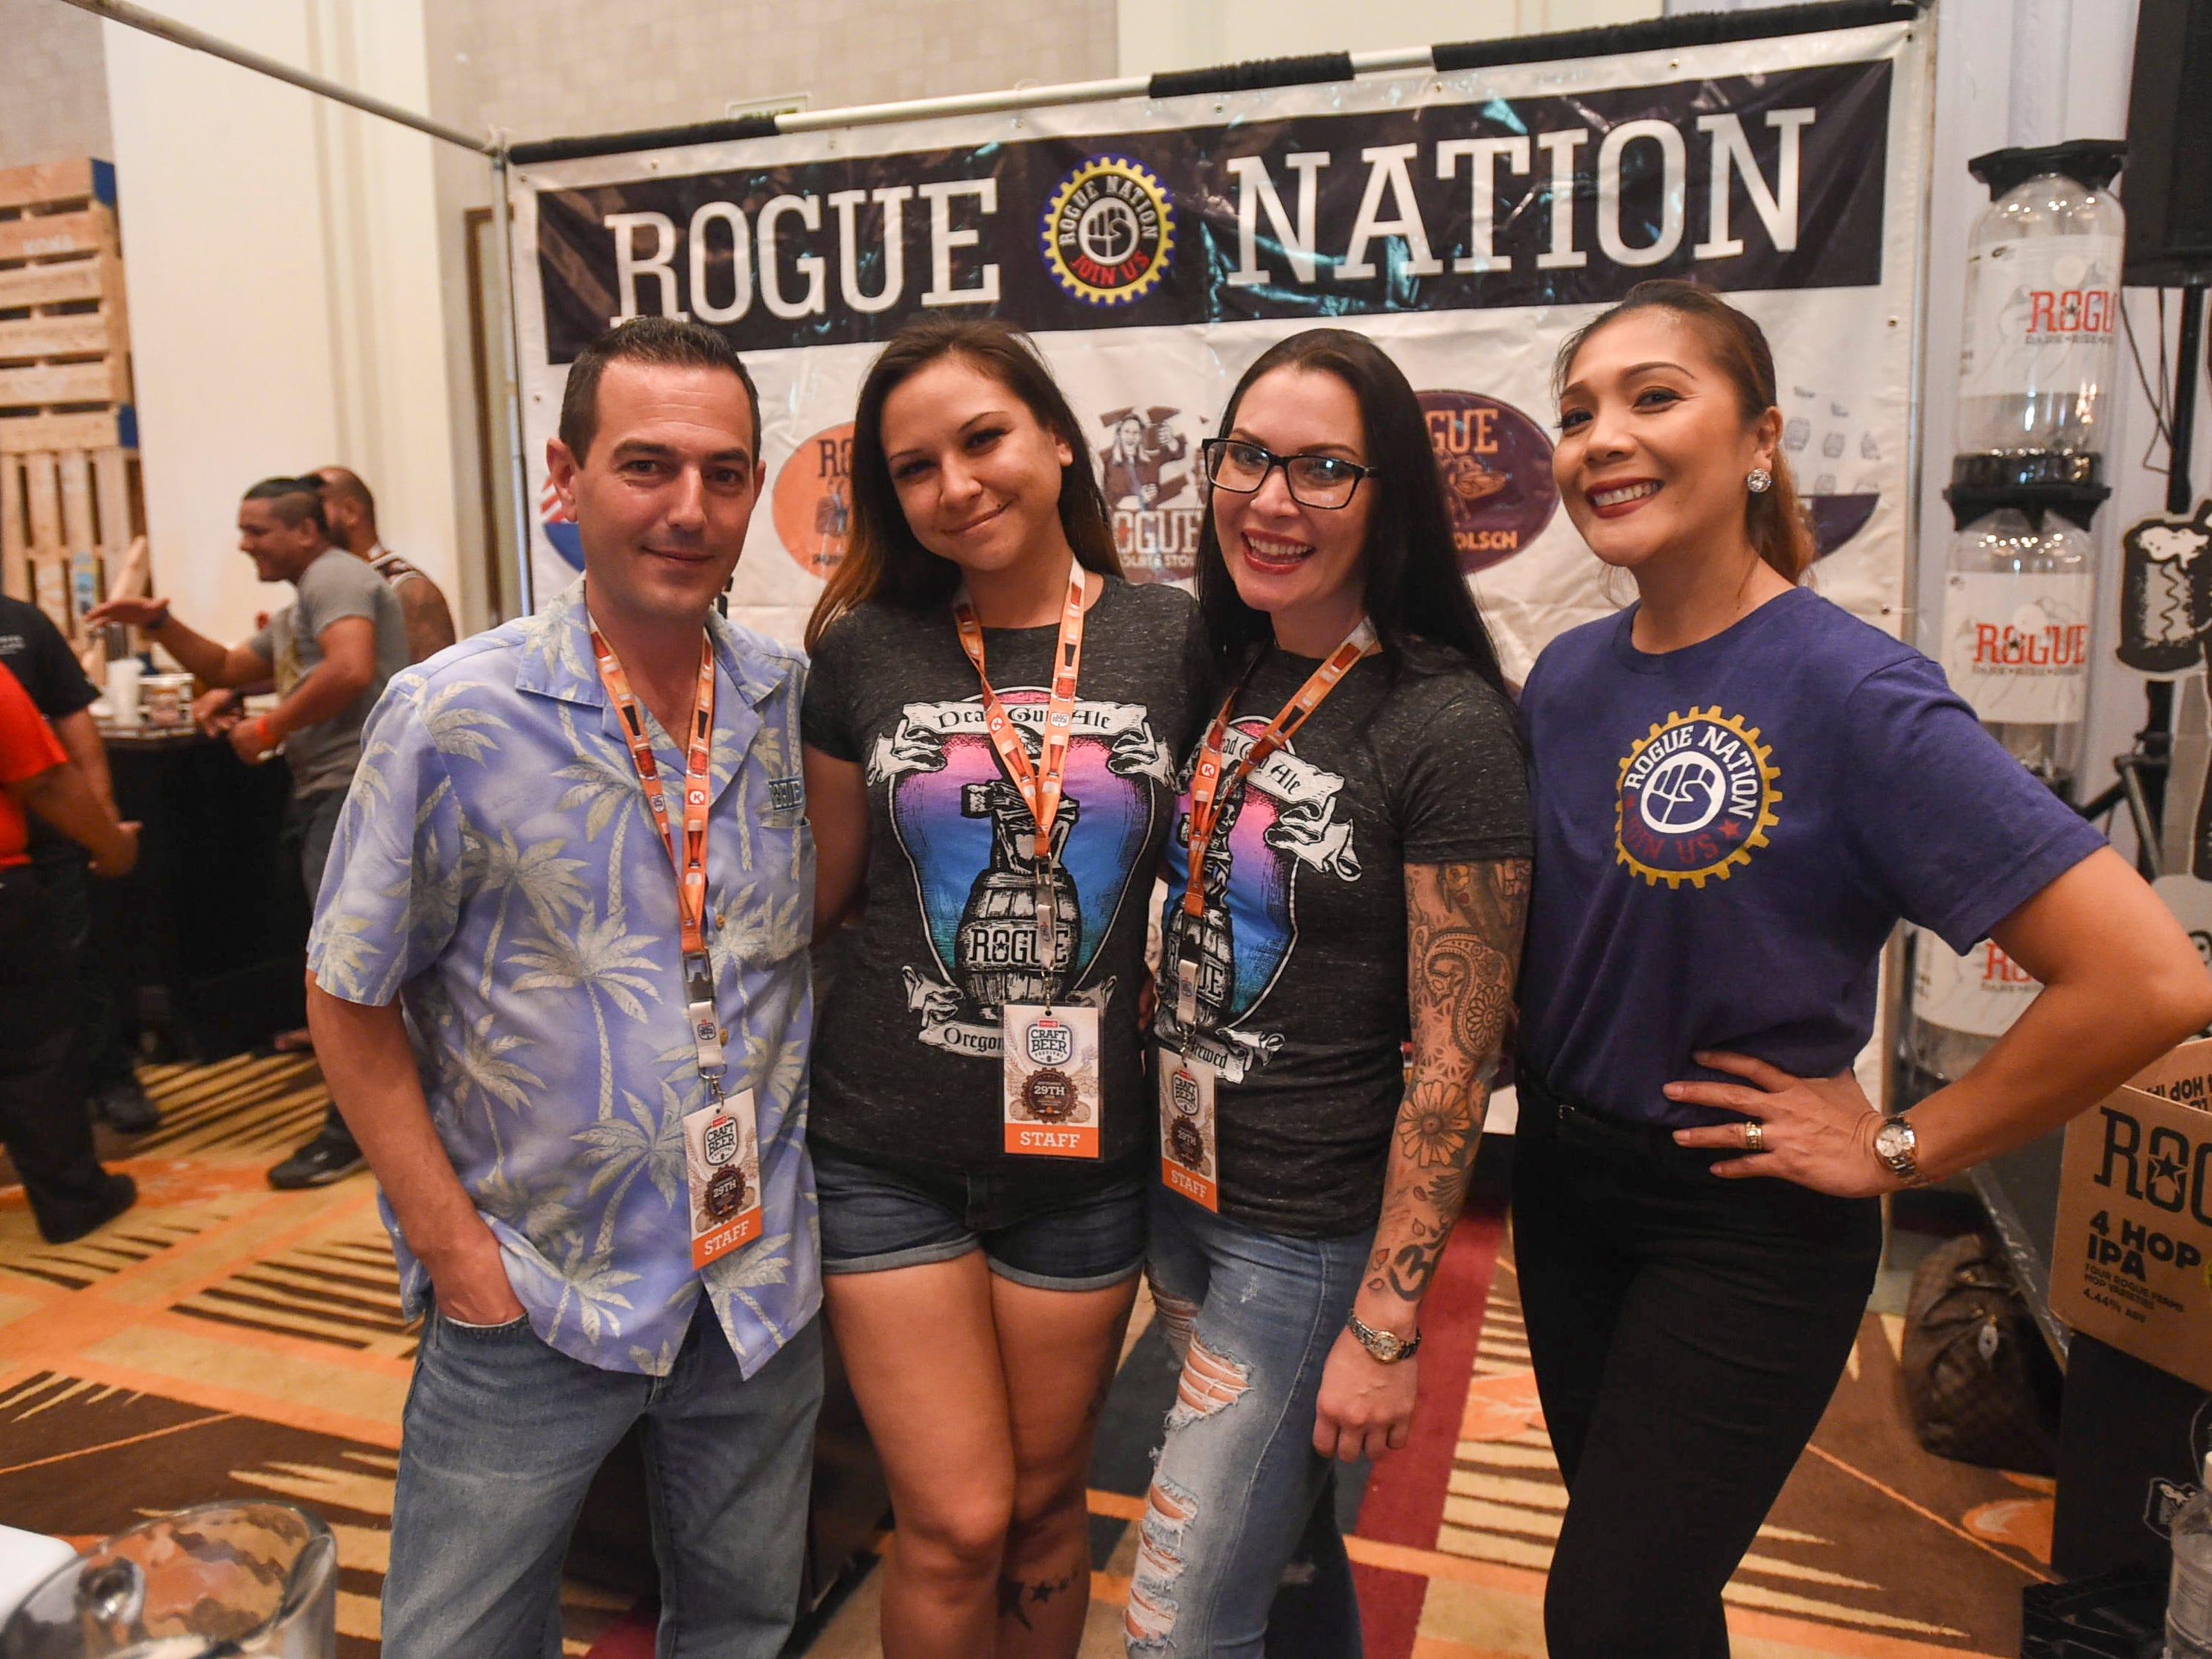 The Rogue Nation crew during the Circle K Craft Beer Festival at the Sheraton Laguna Guam Resort, Sept. 29, 2018. From left: Matt Beck, Anastasia Sablan, Mary Lee Szabo, and Stephanie Mayfield.